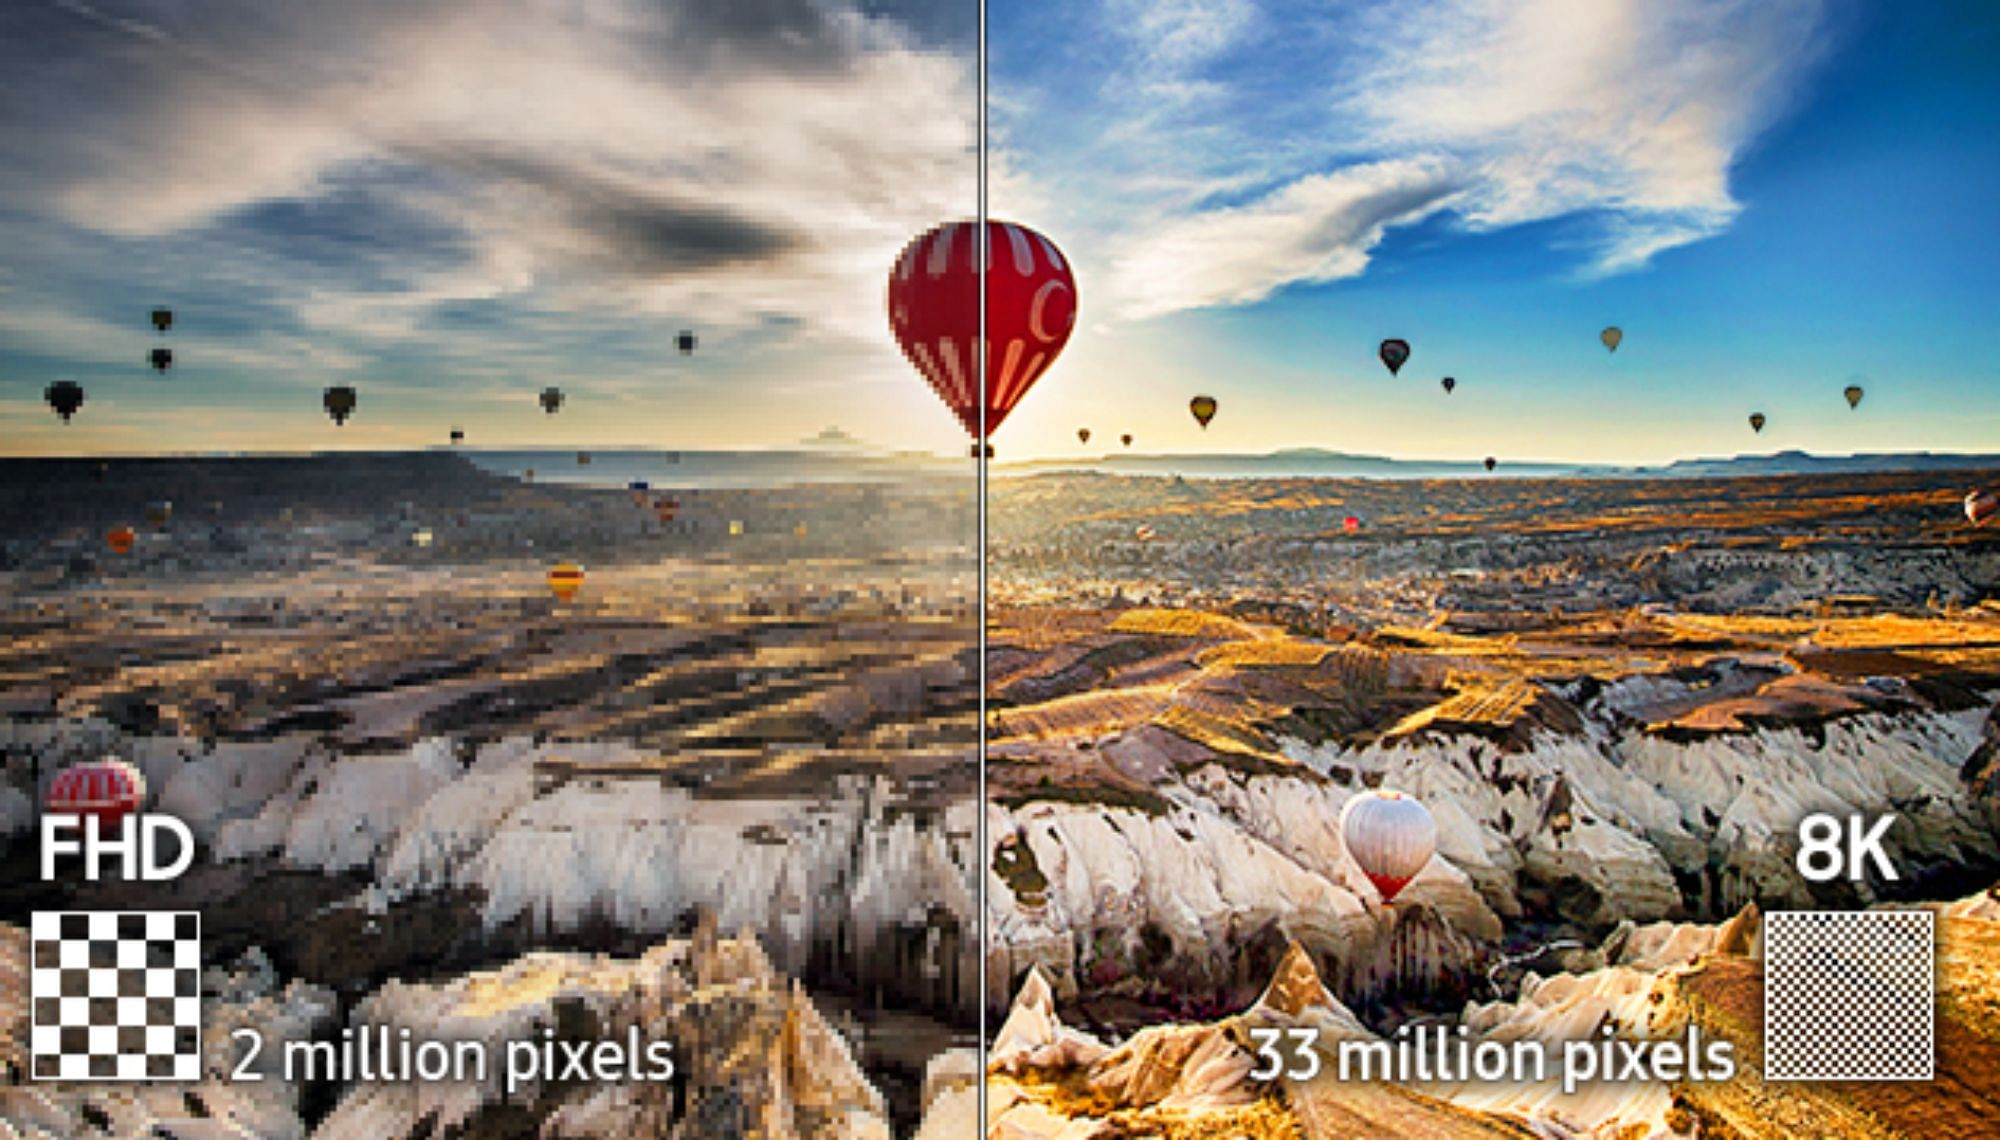 Samsung S Latest Qled 8k Technology Is The Future Of Tv Tech News Top Stories The Straits Times